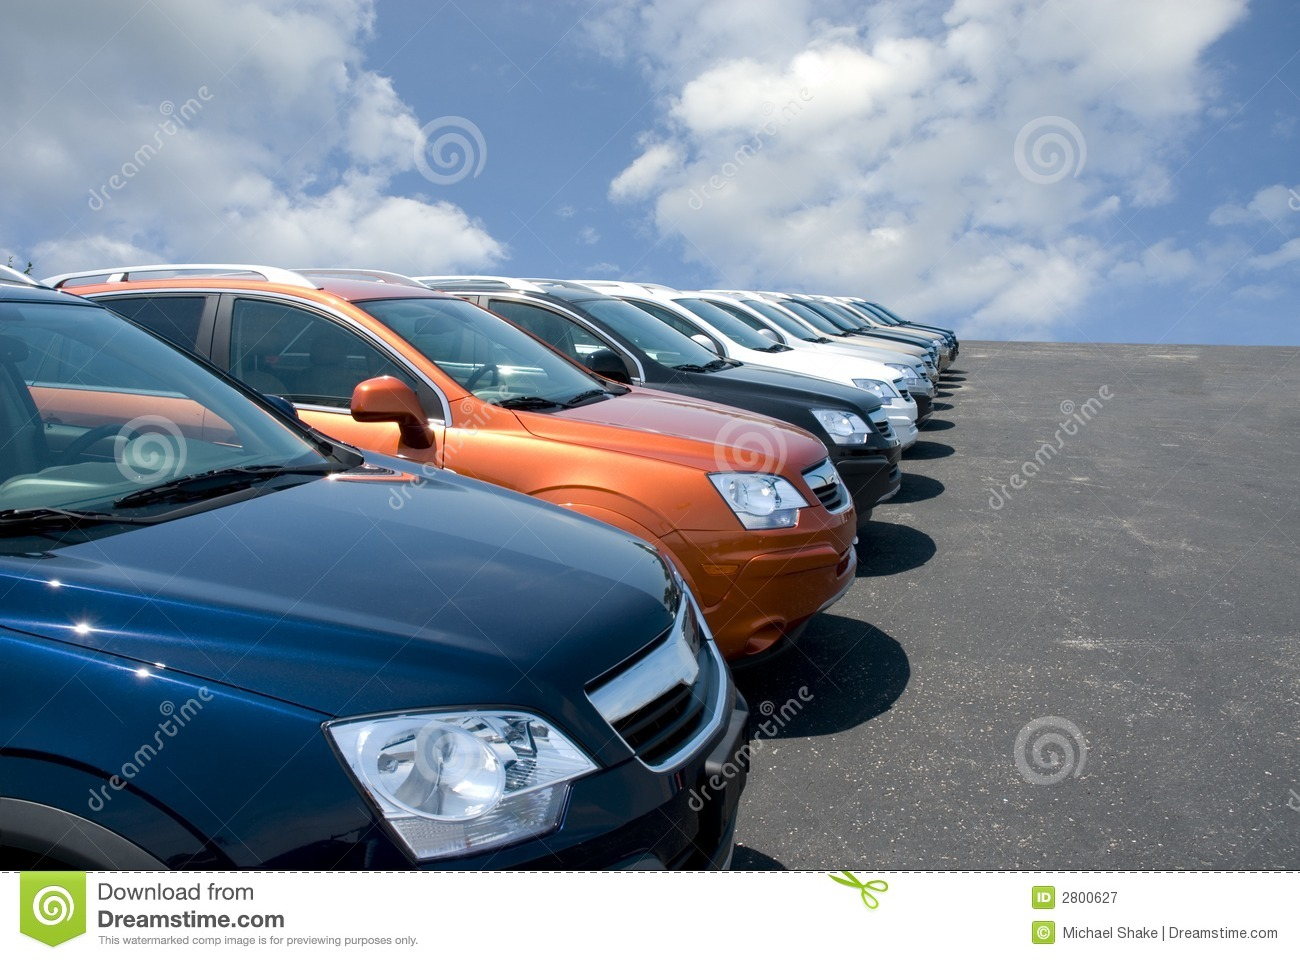 Car Lot Royalty Free Stock Photography   Image  2800627